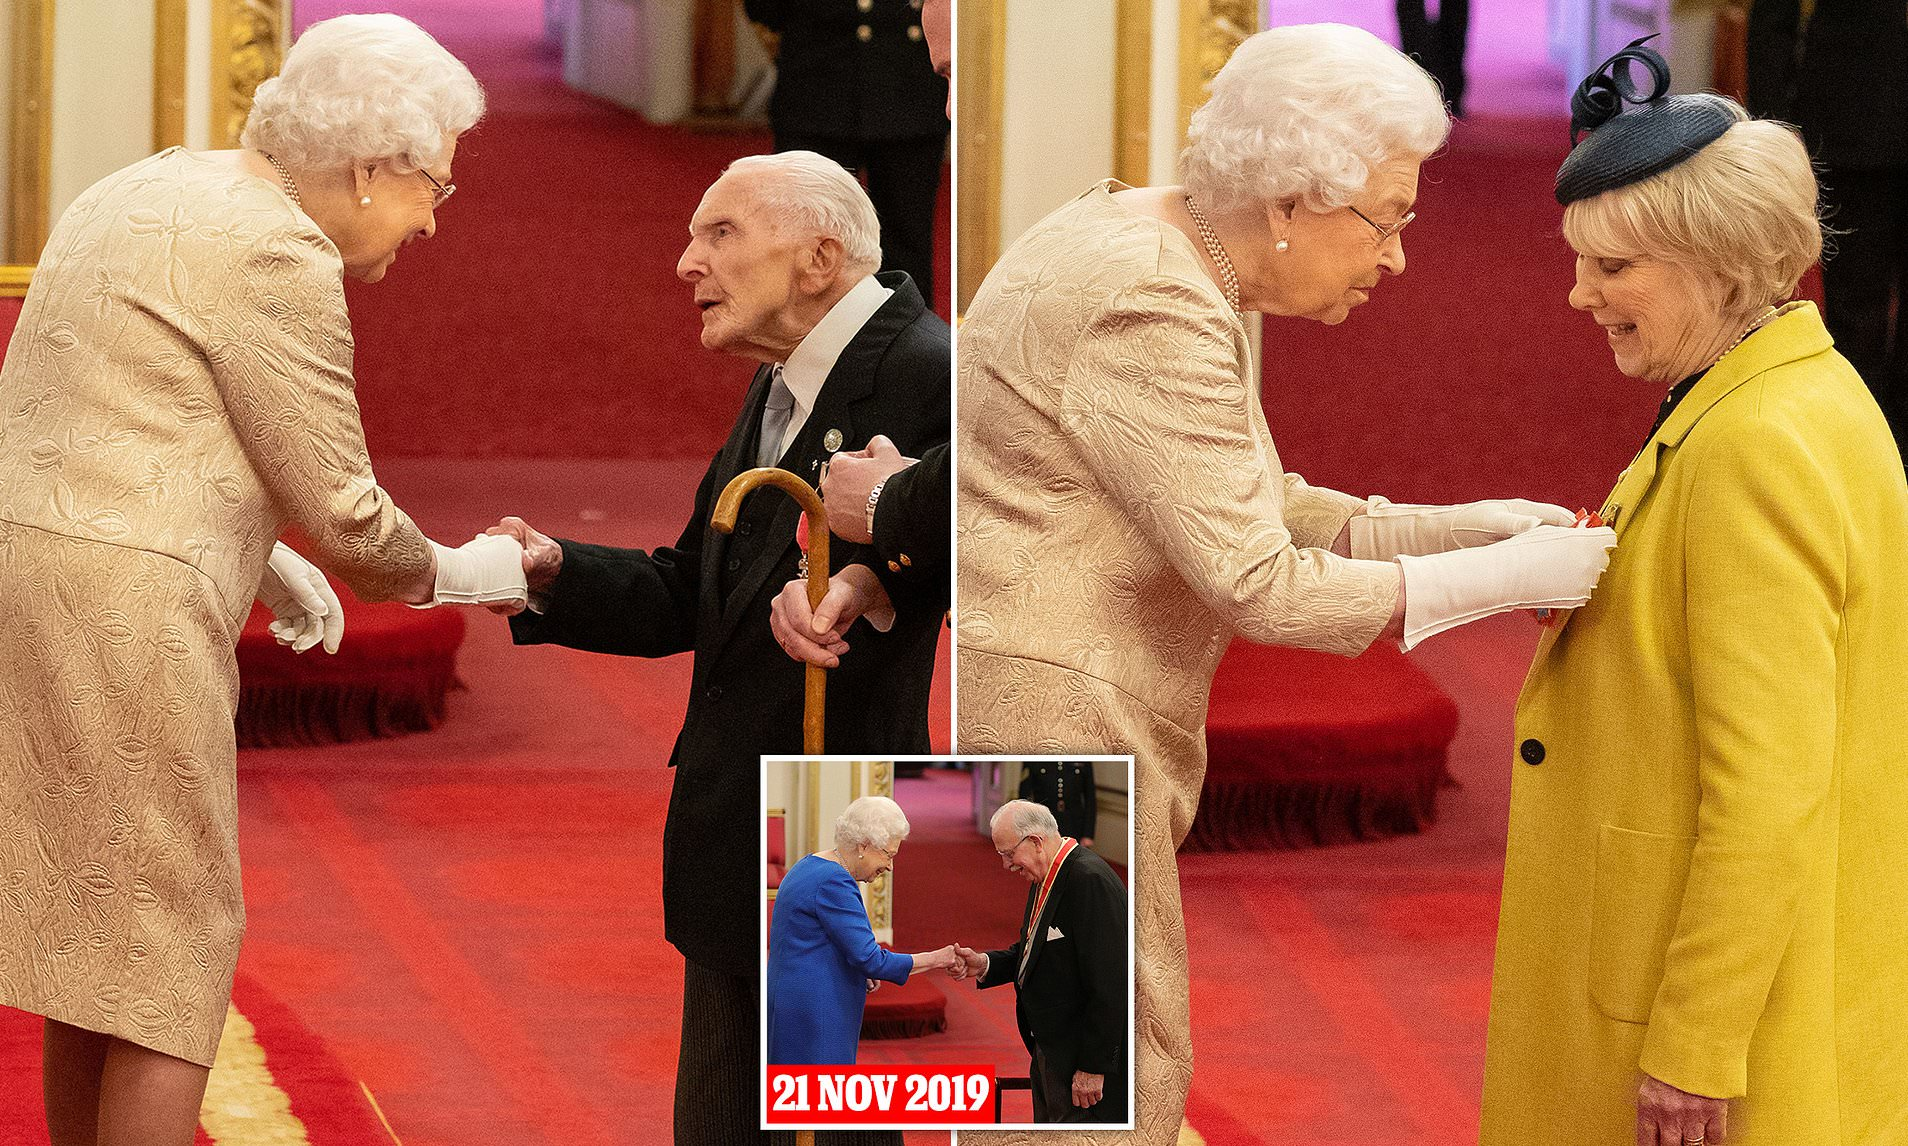 Coronavirus: The Queen wears gloves at investiture ceremony ...